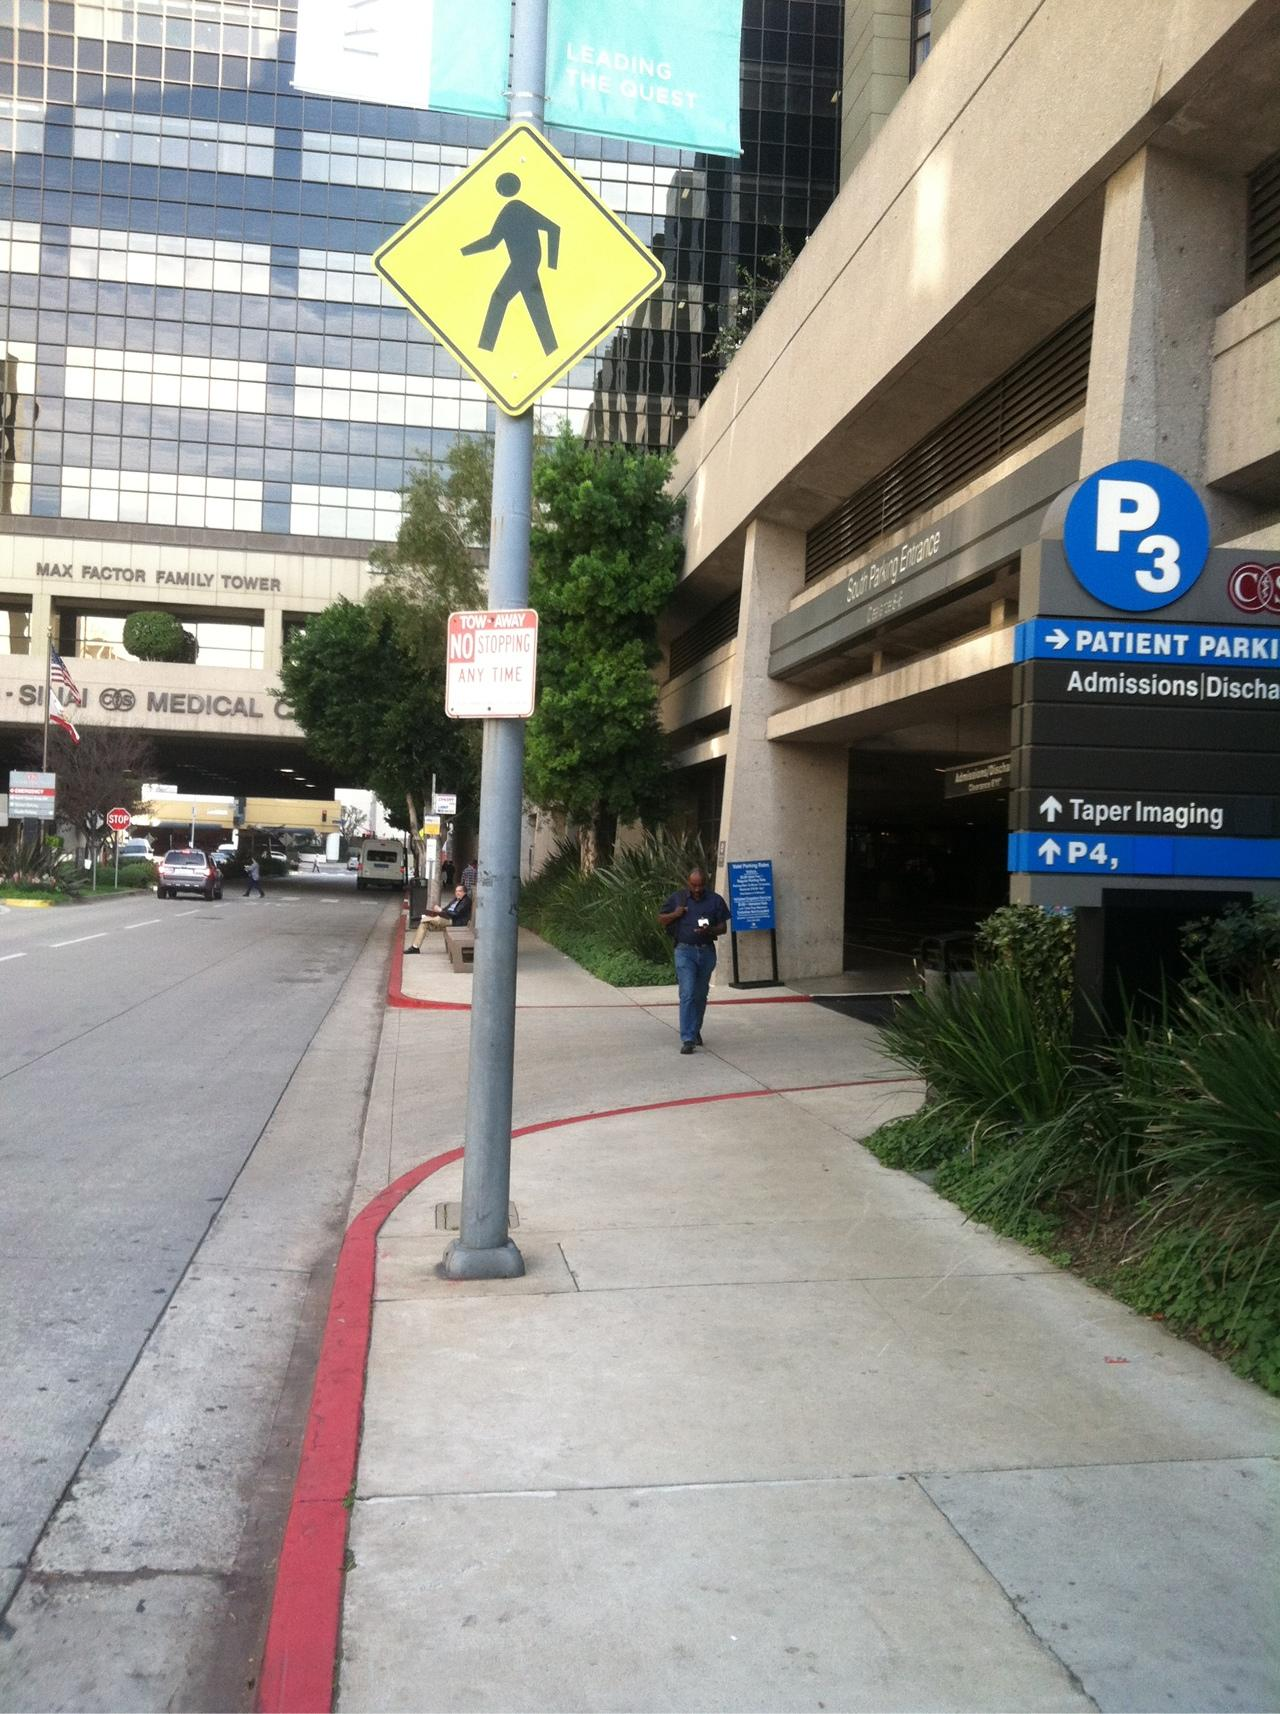 P3 - Cedars-Sinai Medical Center - Parking in Los Angeles | ParkMe